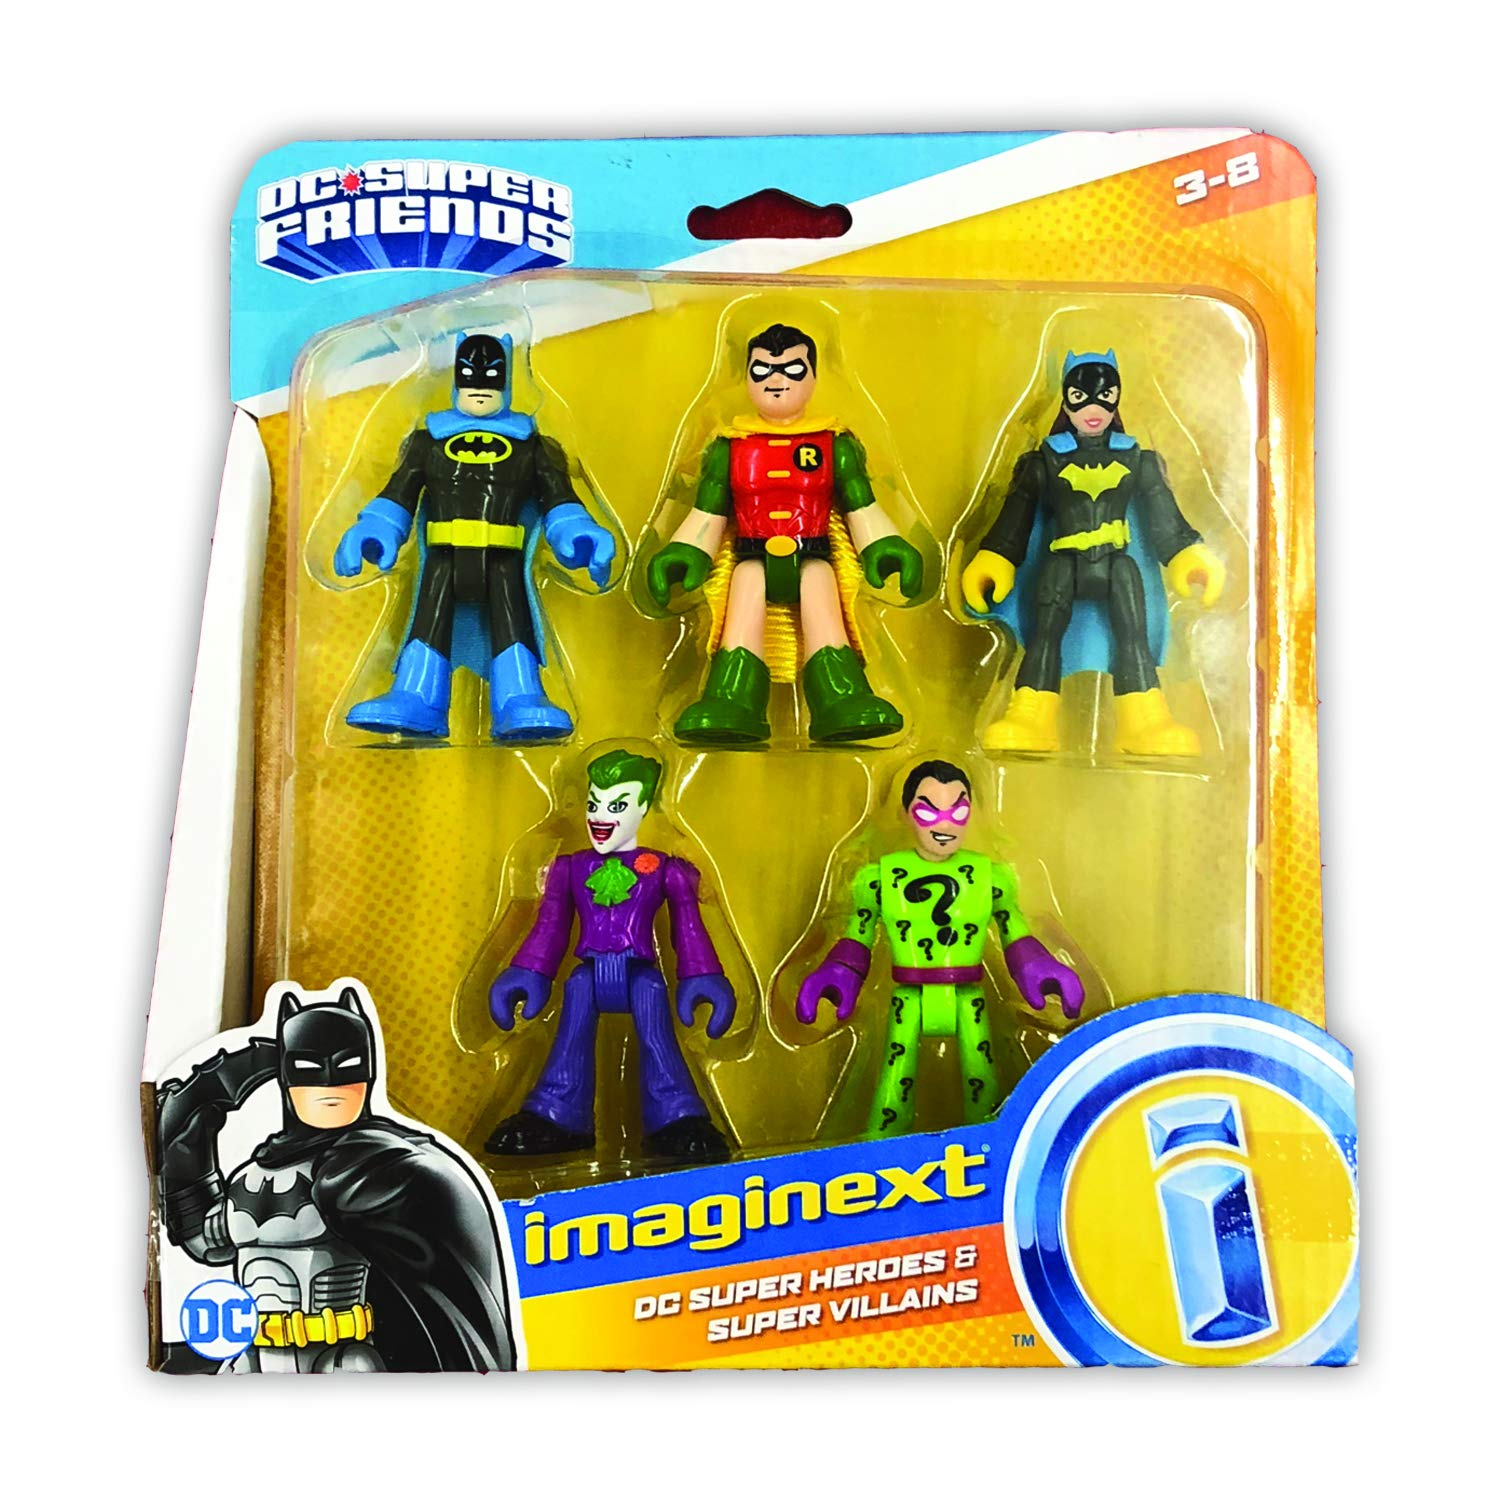 Fisher-Price Imaginext DC Heroes and Super Villains Action Figure 5-Pack by Fisher-Price (Image #1)